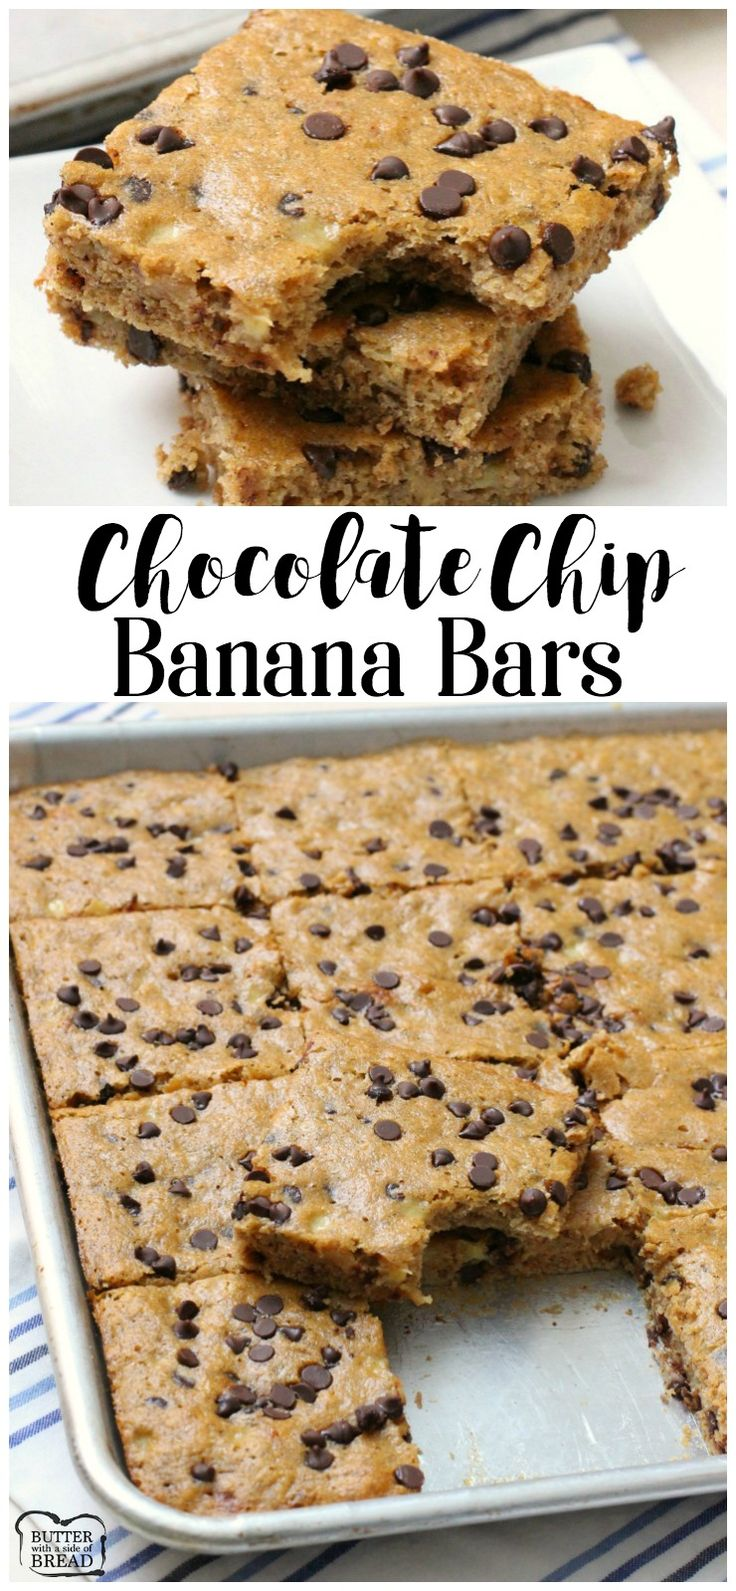 Chocolate Chip Banana Bars - Butter With A Side of Bread